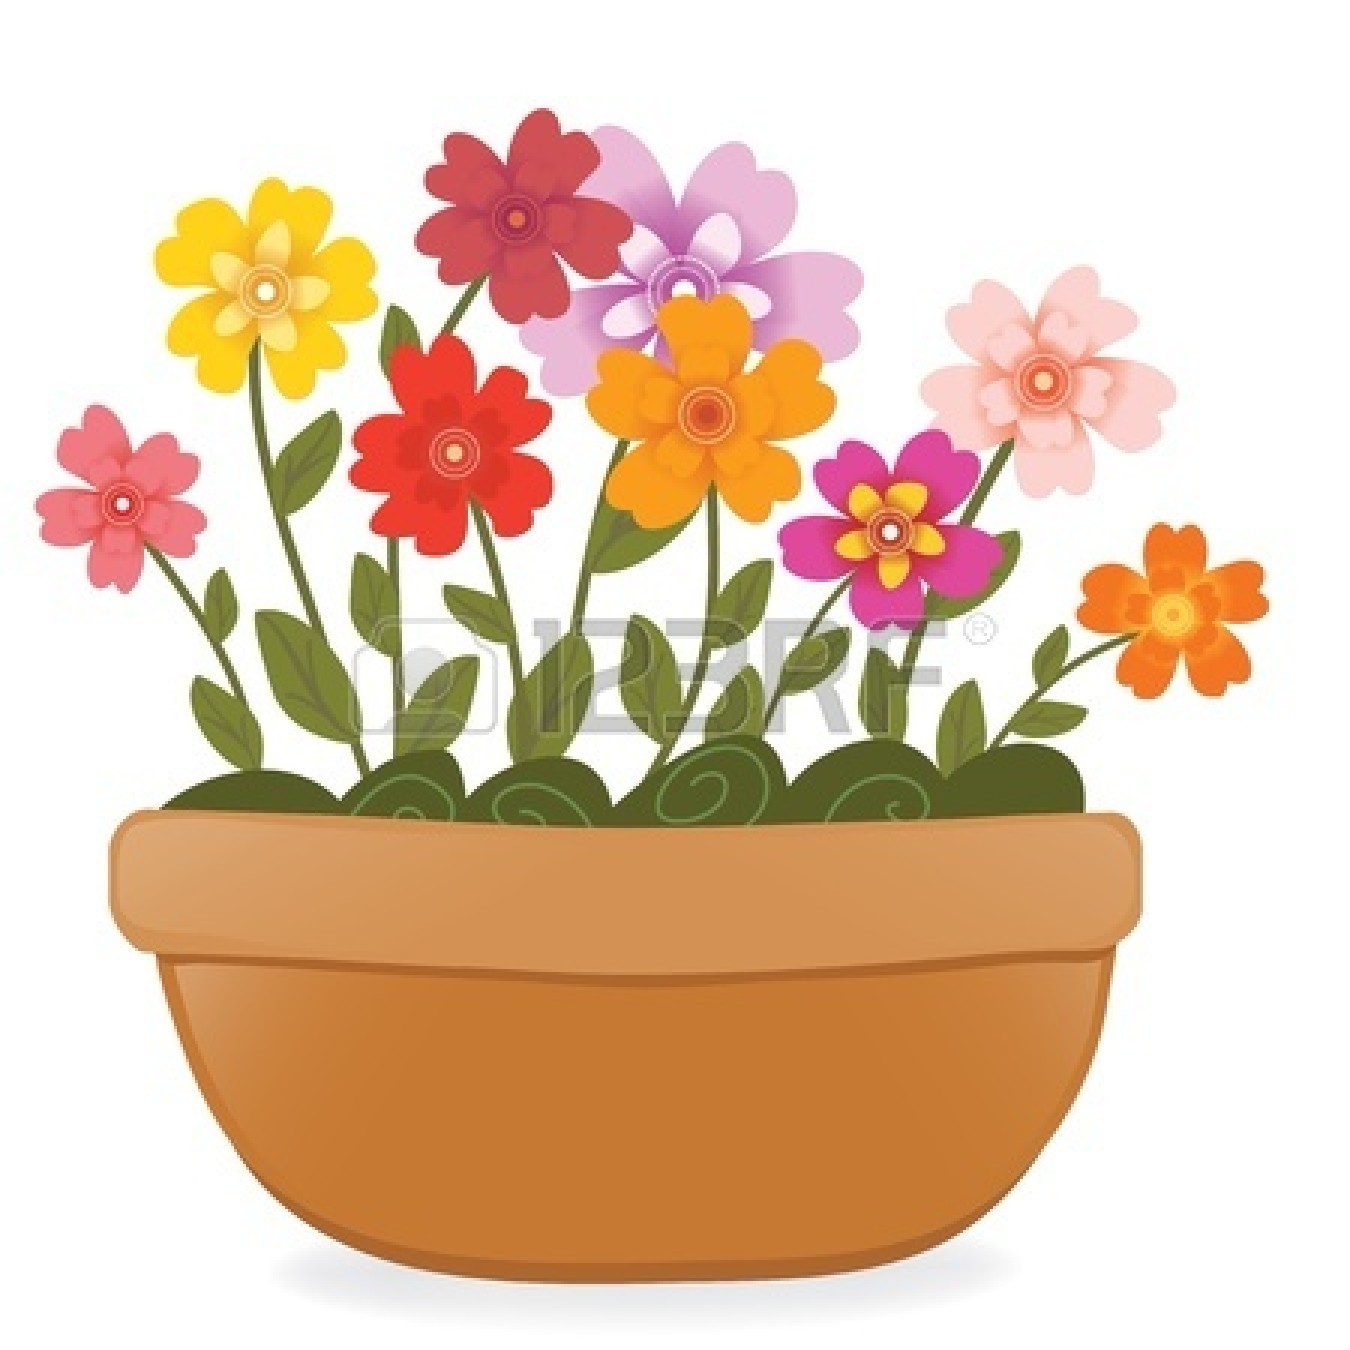 1350x1350 Plants And Flowers Clipart